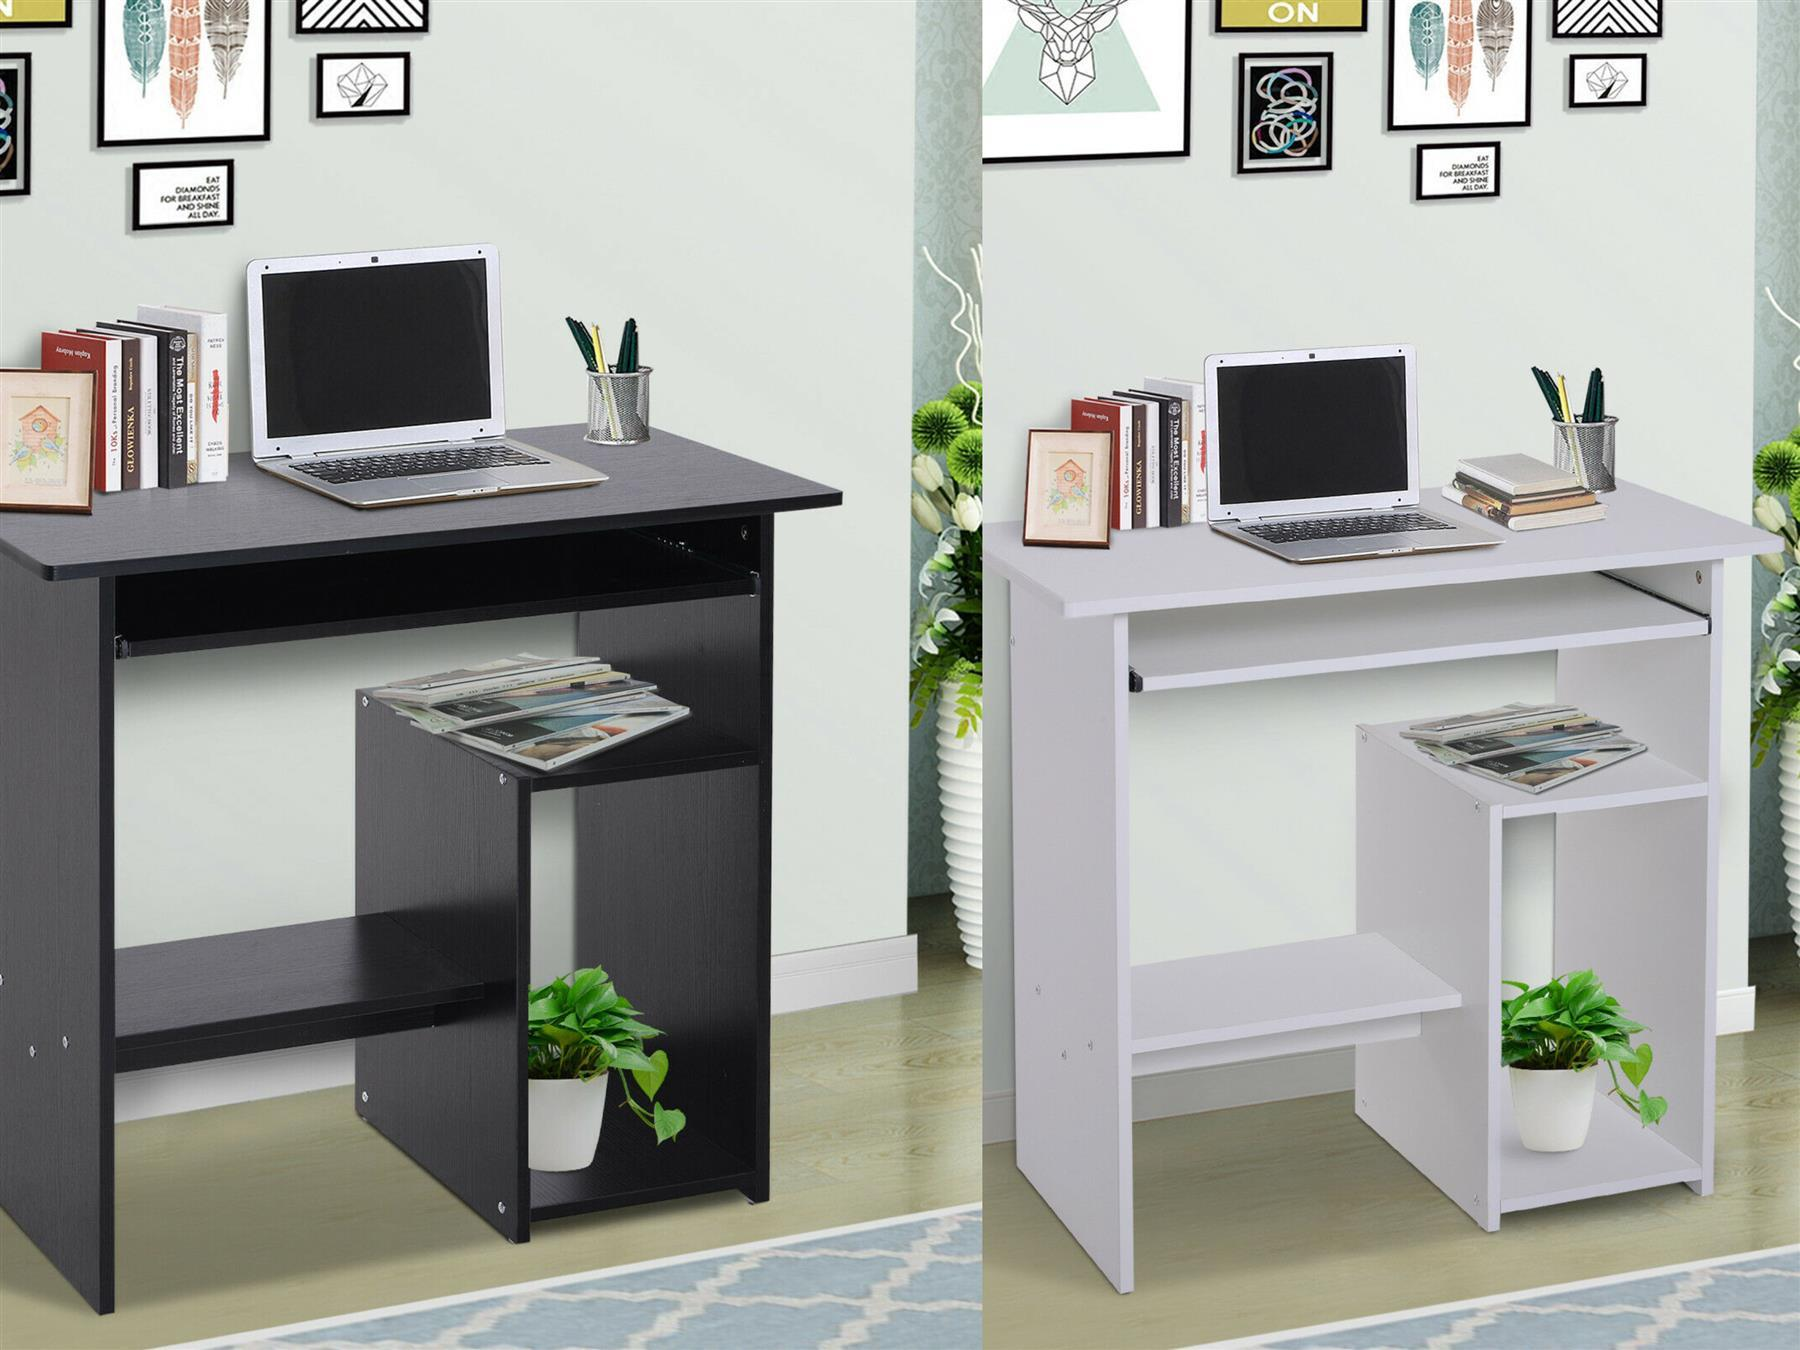 Details about Compact Small Computer Table Wooden Desk Keyboard Tray  Storage Shelf Corner